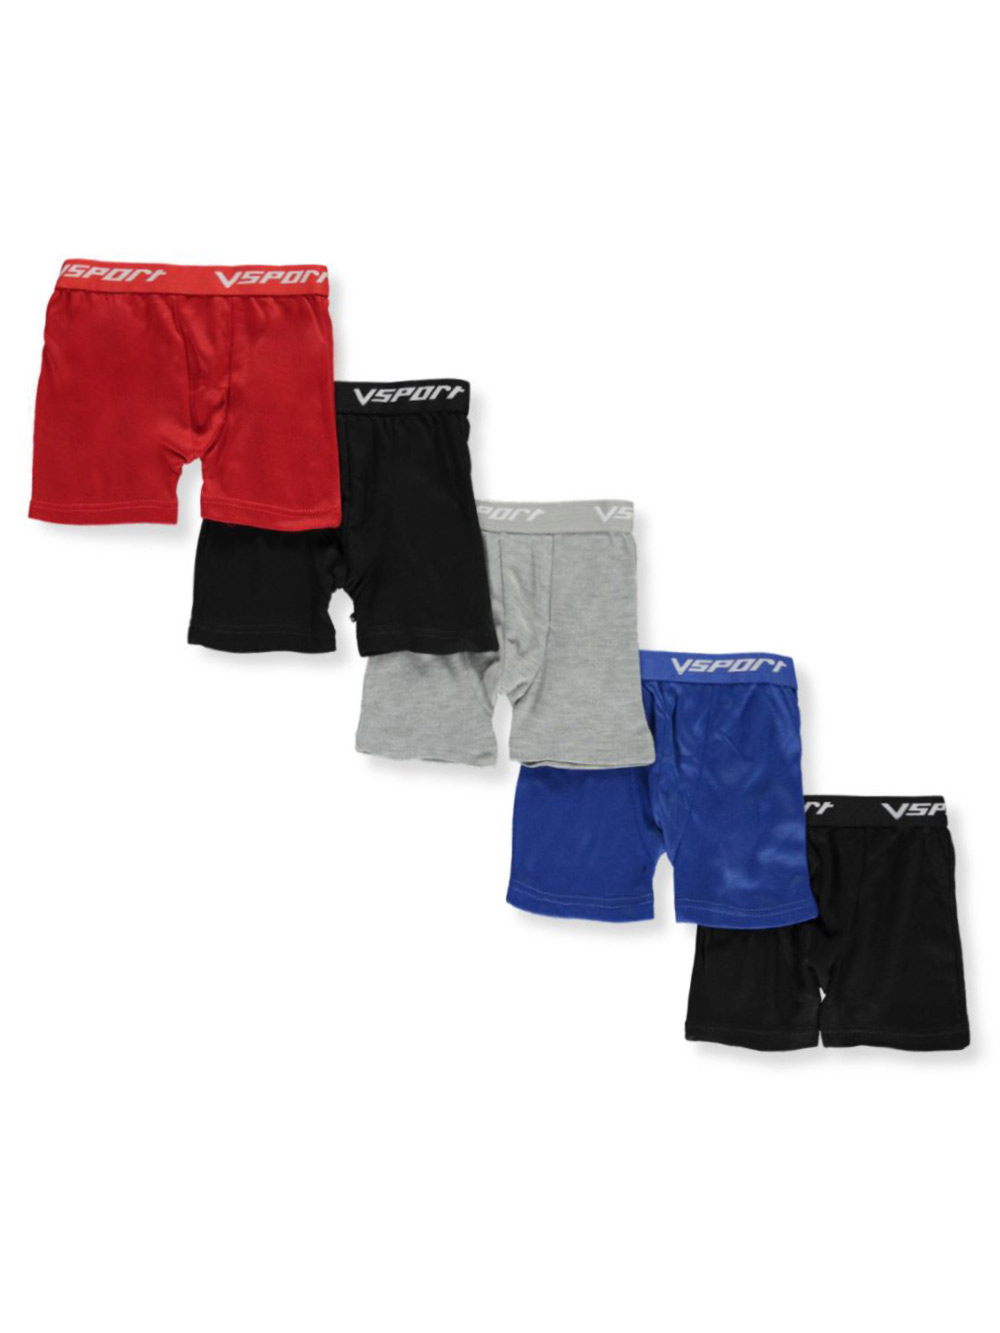 Vsport Underwear